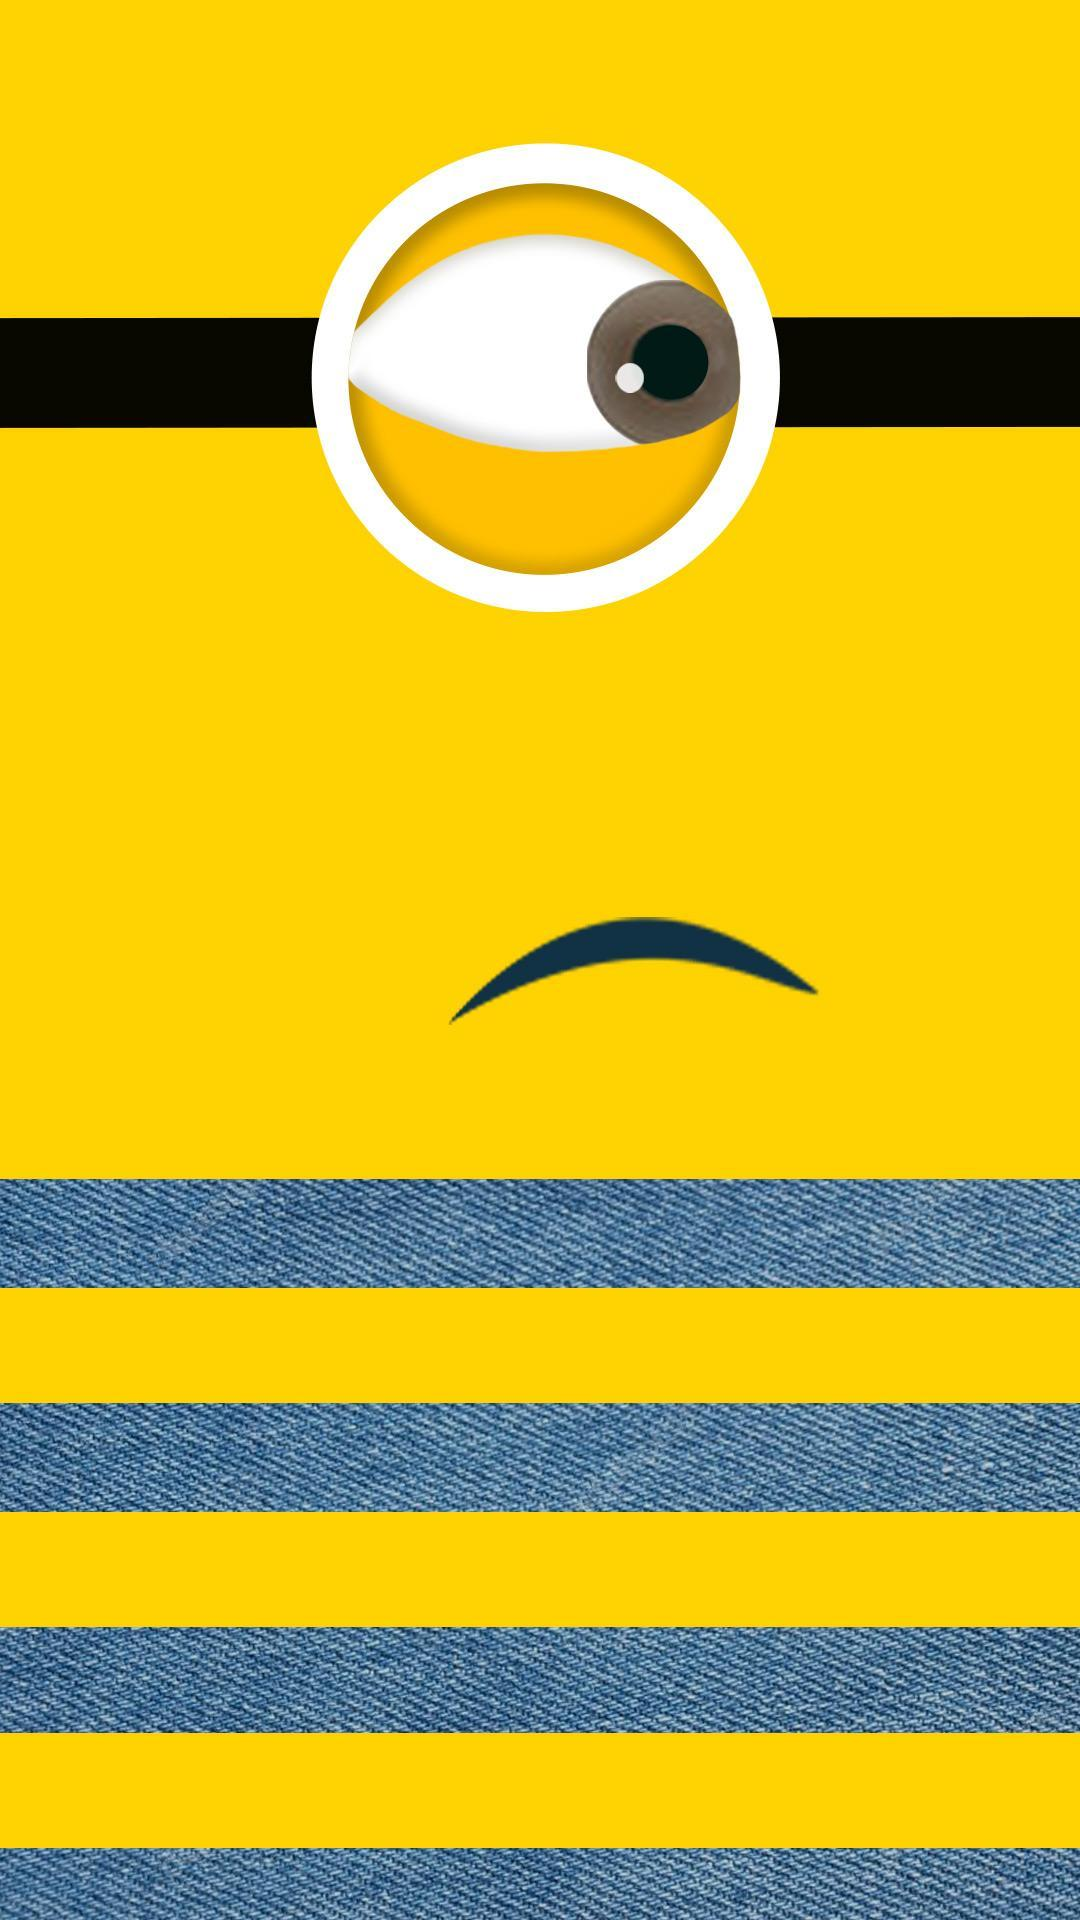 Cute Yellow Banana Cartoon Live Wallpaper For Android Apk